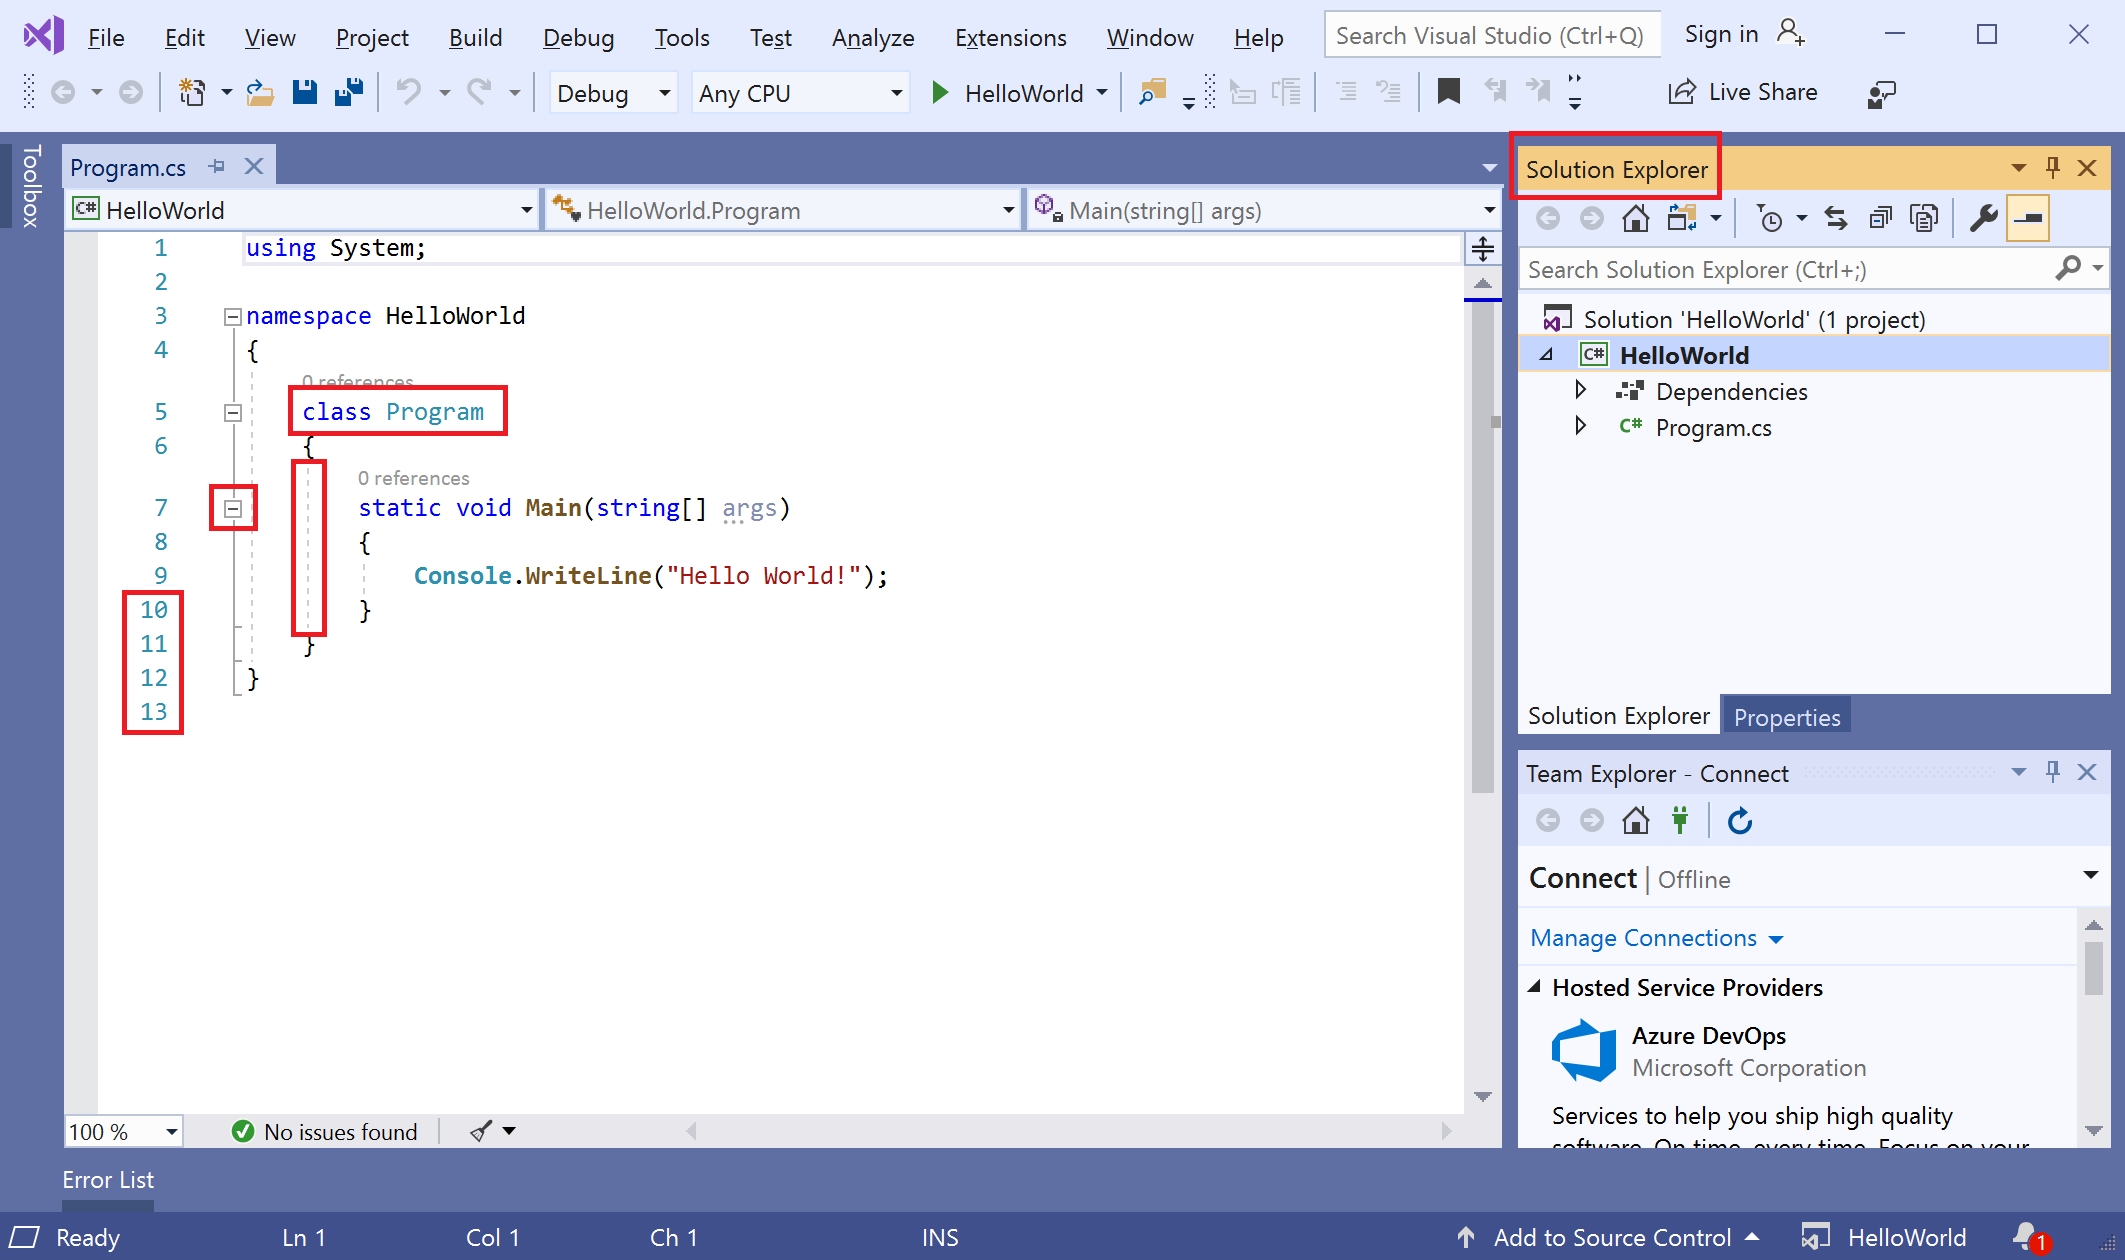 overview-ide-console-app-red-boxes-4885968